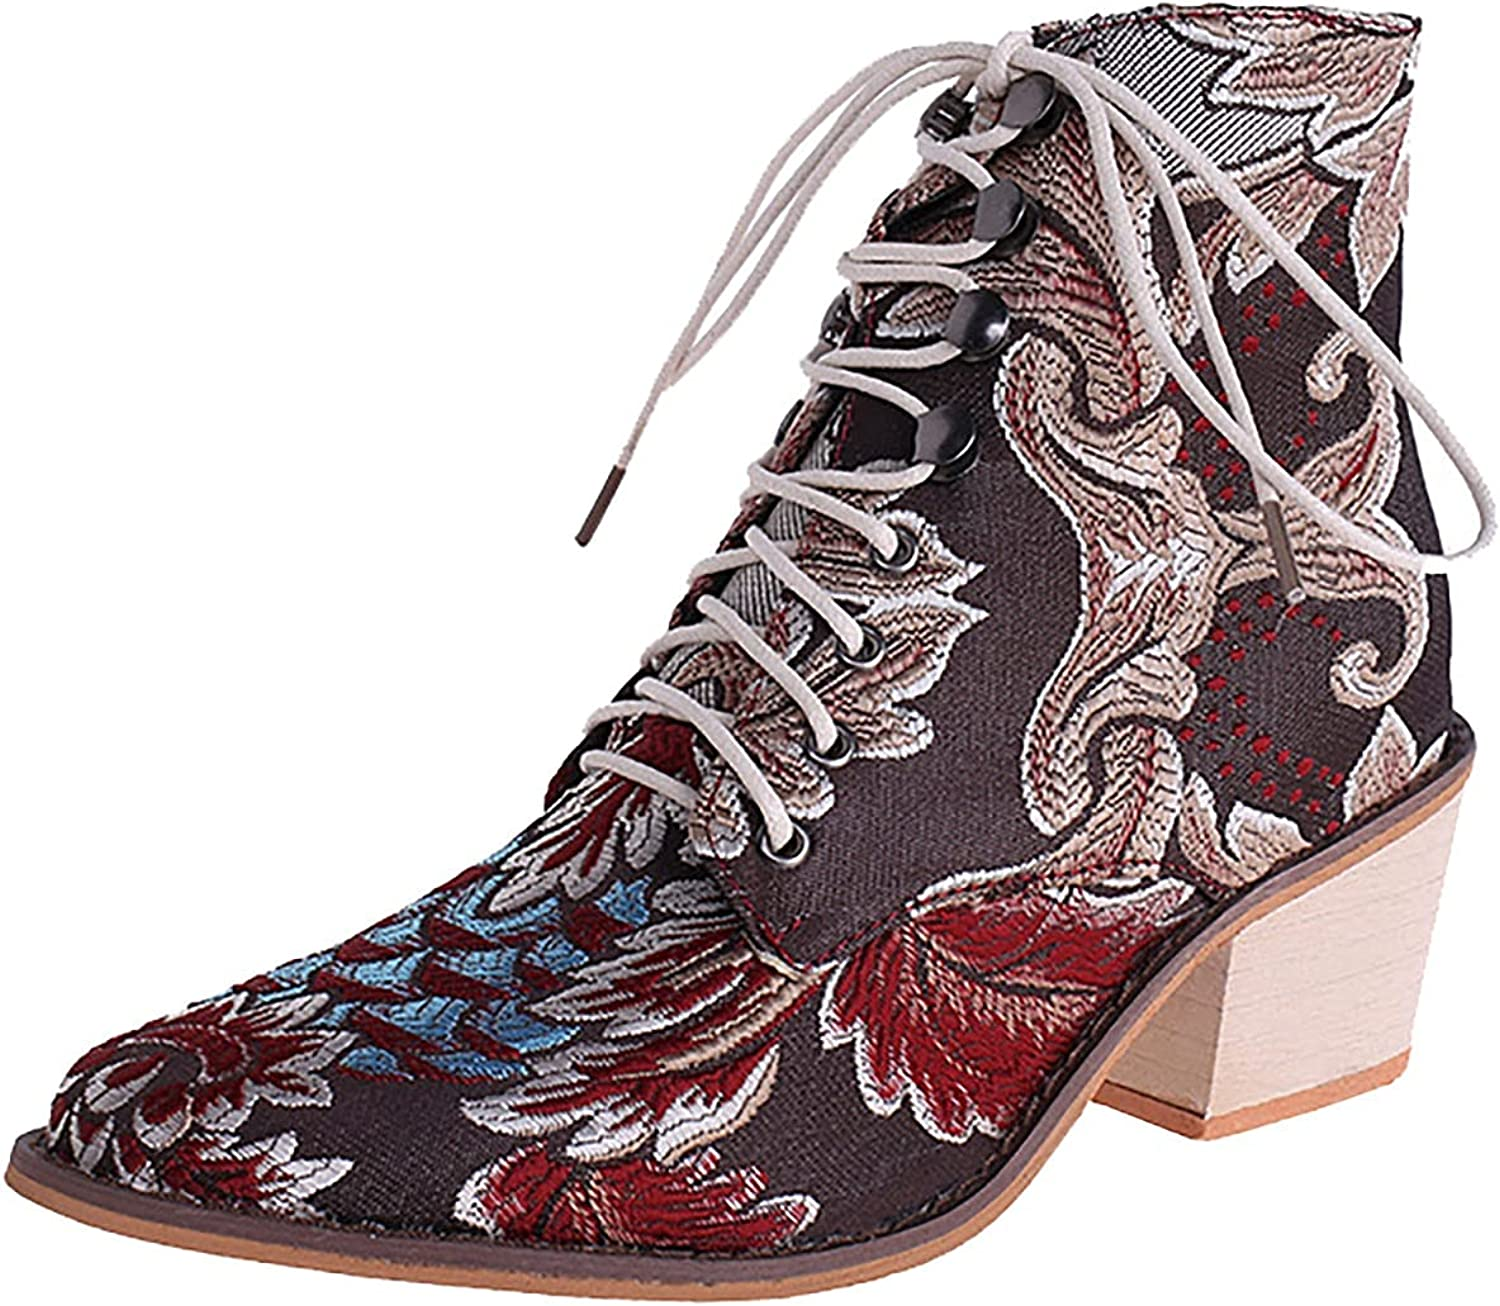 Women's Embroidered Lace-Up Ankle Boots Vintage Block Mid P 2021 autumn and winter new Heel Award